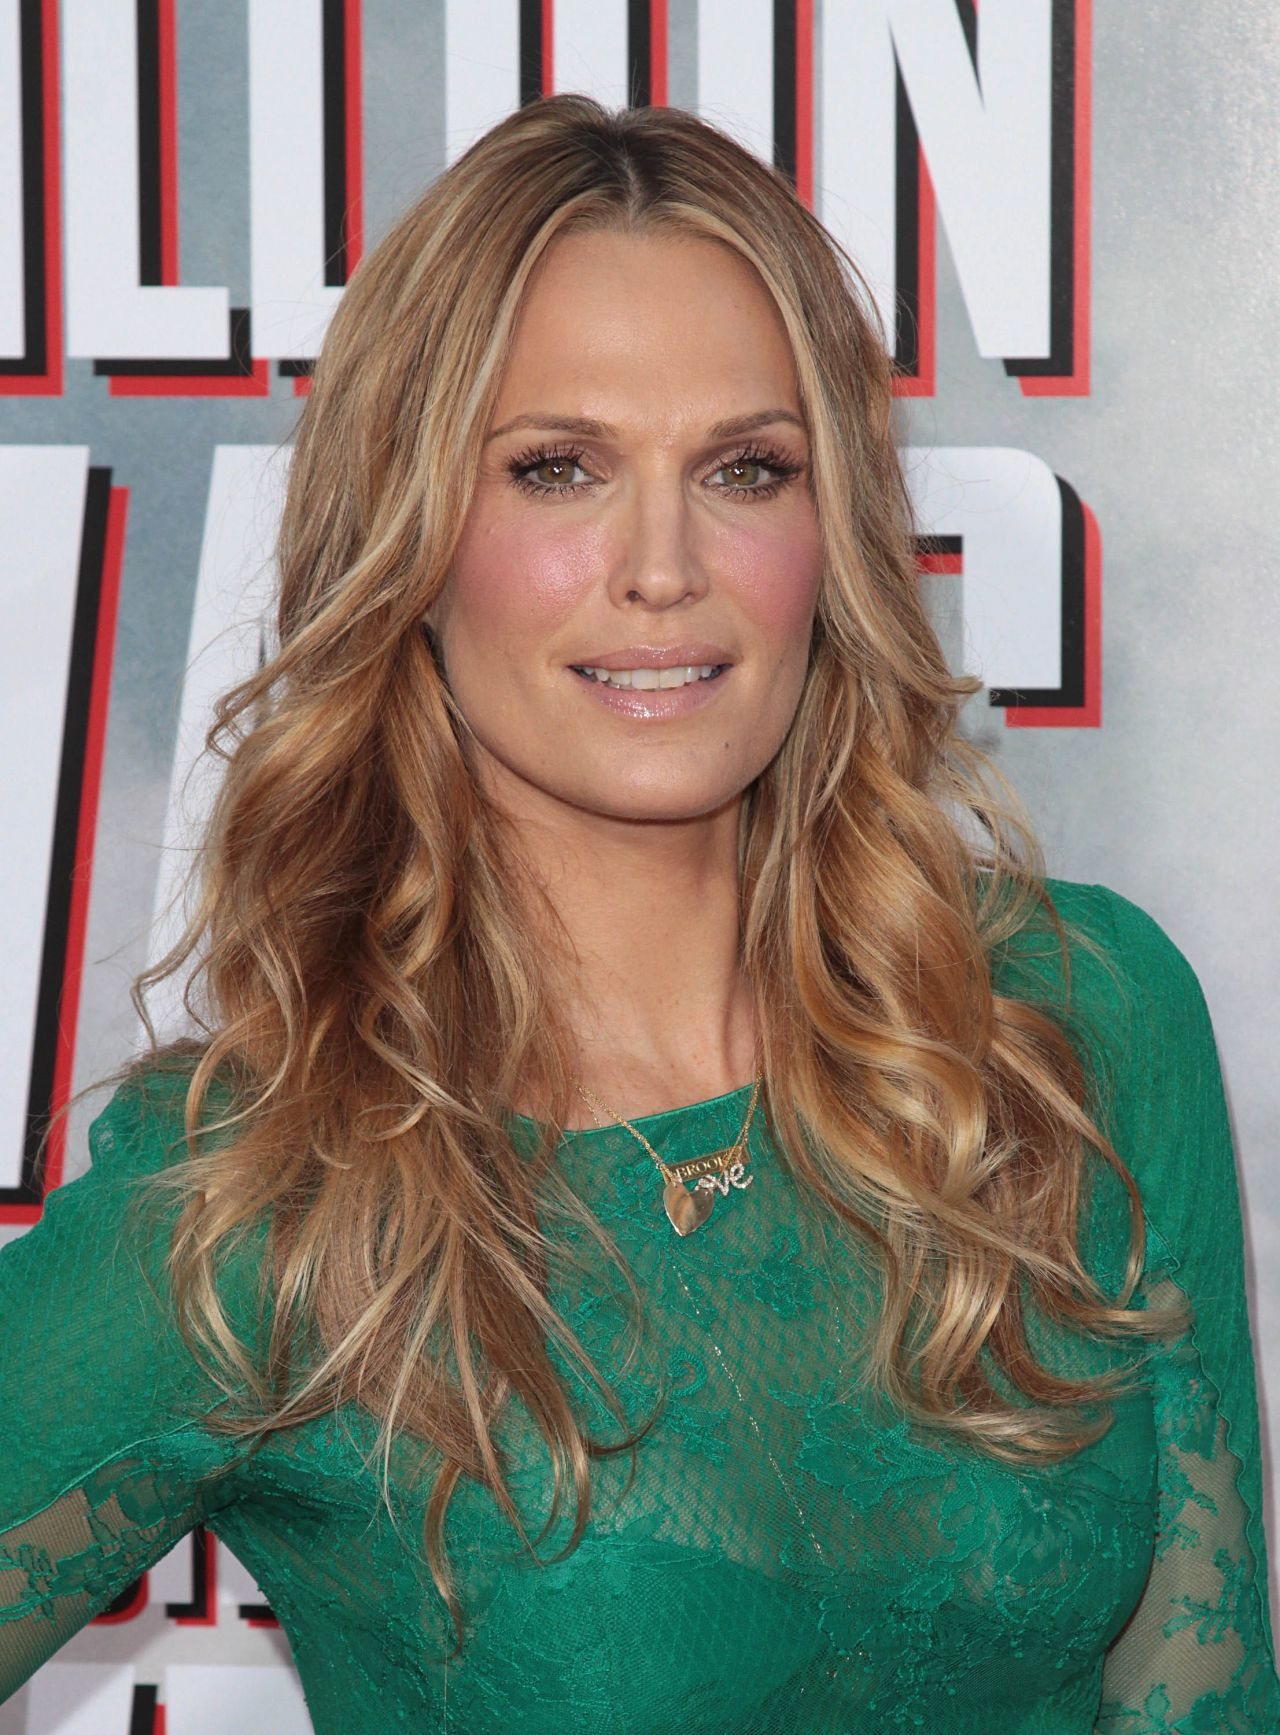 Molly Sims On Red Carpet A Million Ways To Die In The